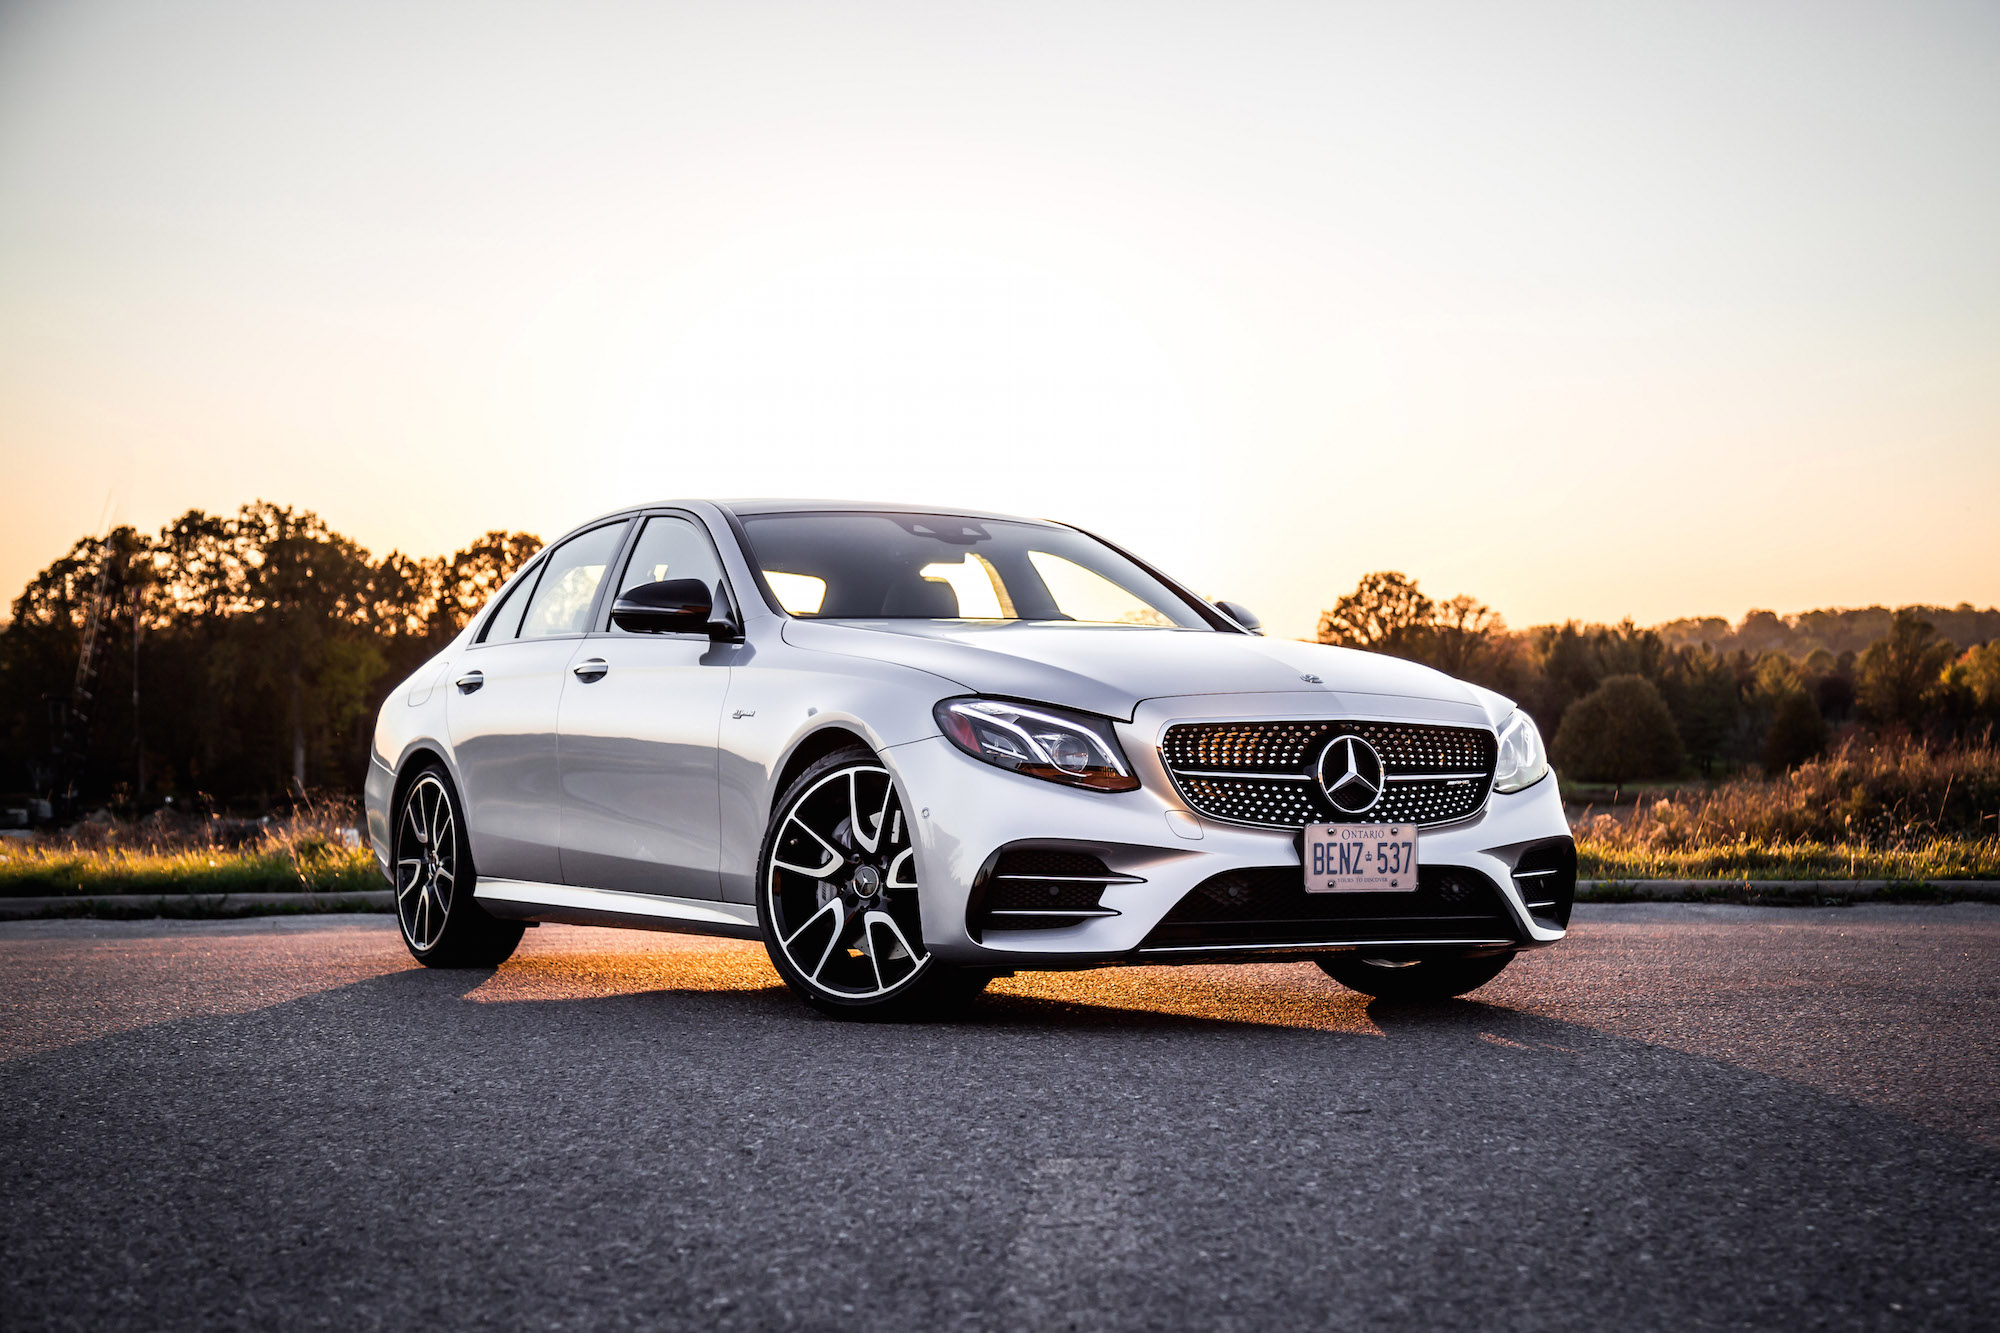 http://www.canadianautoreview.ca/images/car_photos/2017-mercedes-amg-e43-4matic-sedan/normal/e43-fs1.jpg